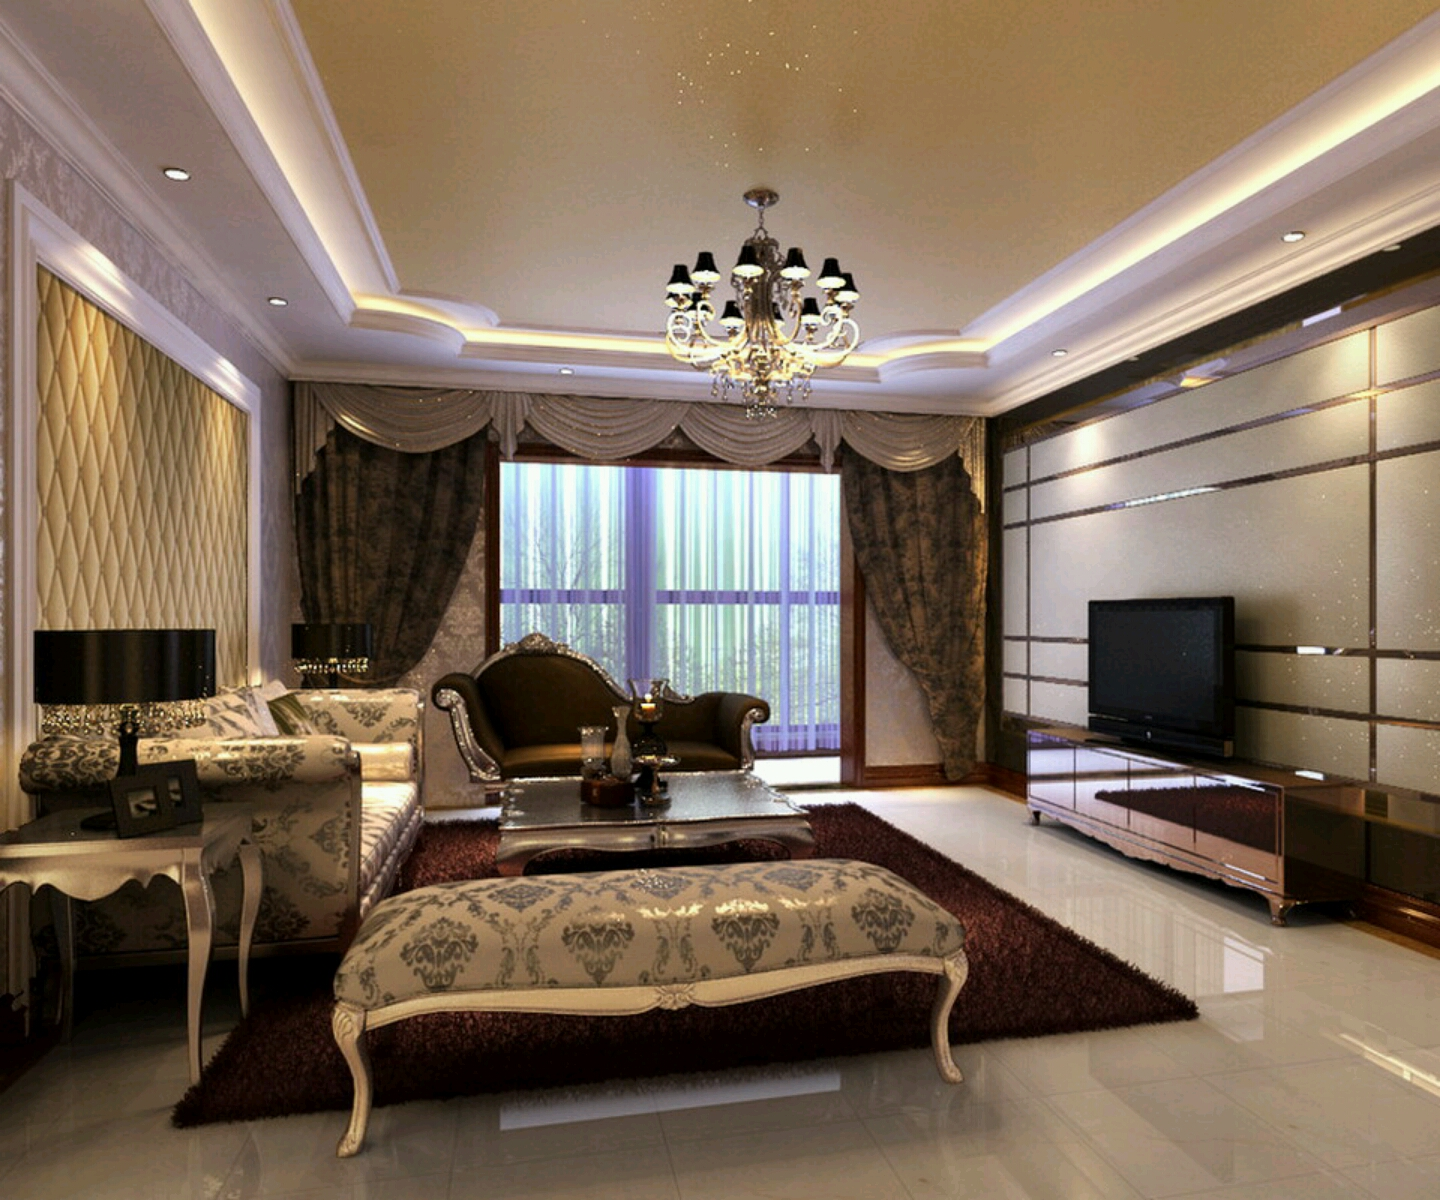 new home designs latest luxury homes interior decoration - Ideas For Interior Decoration